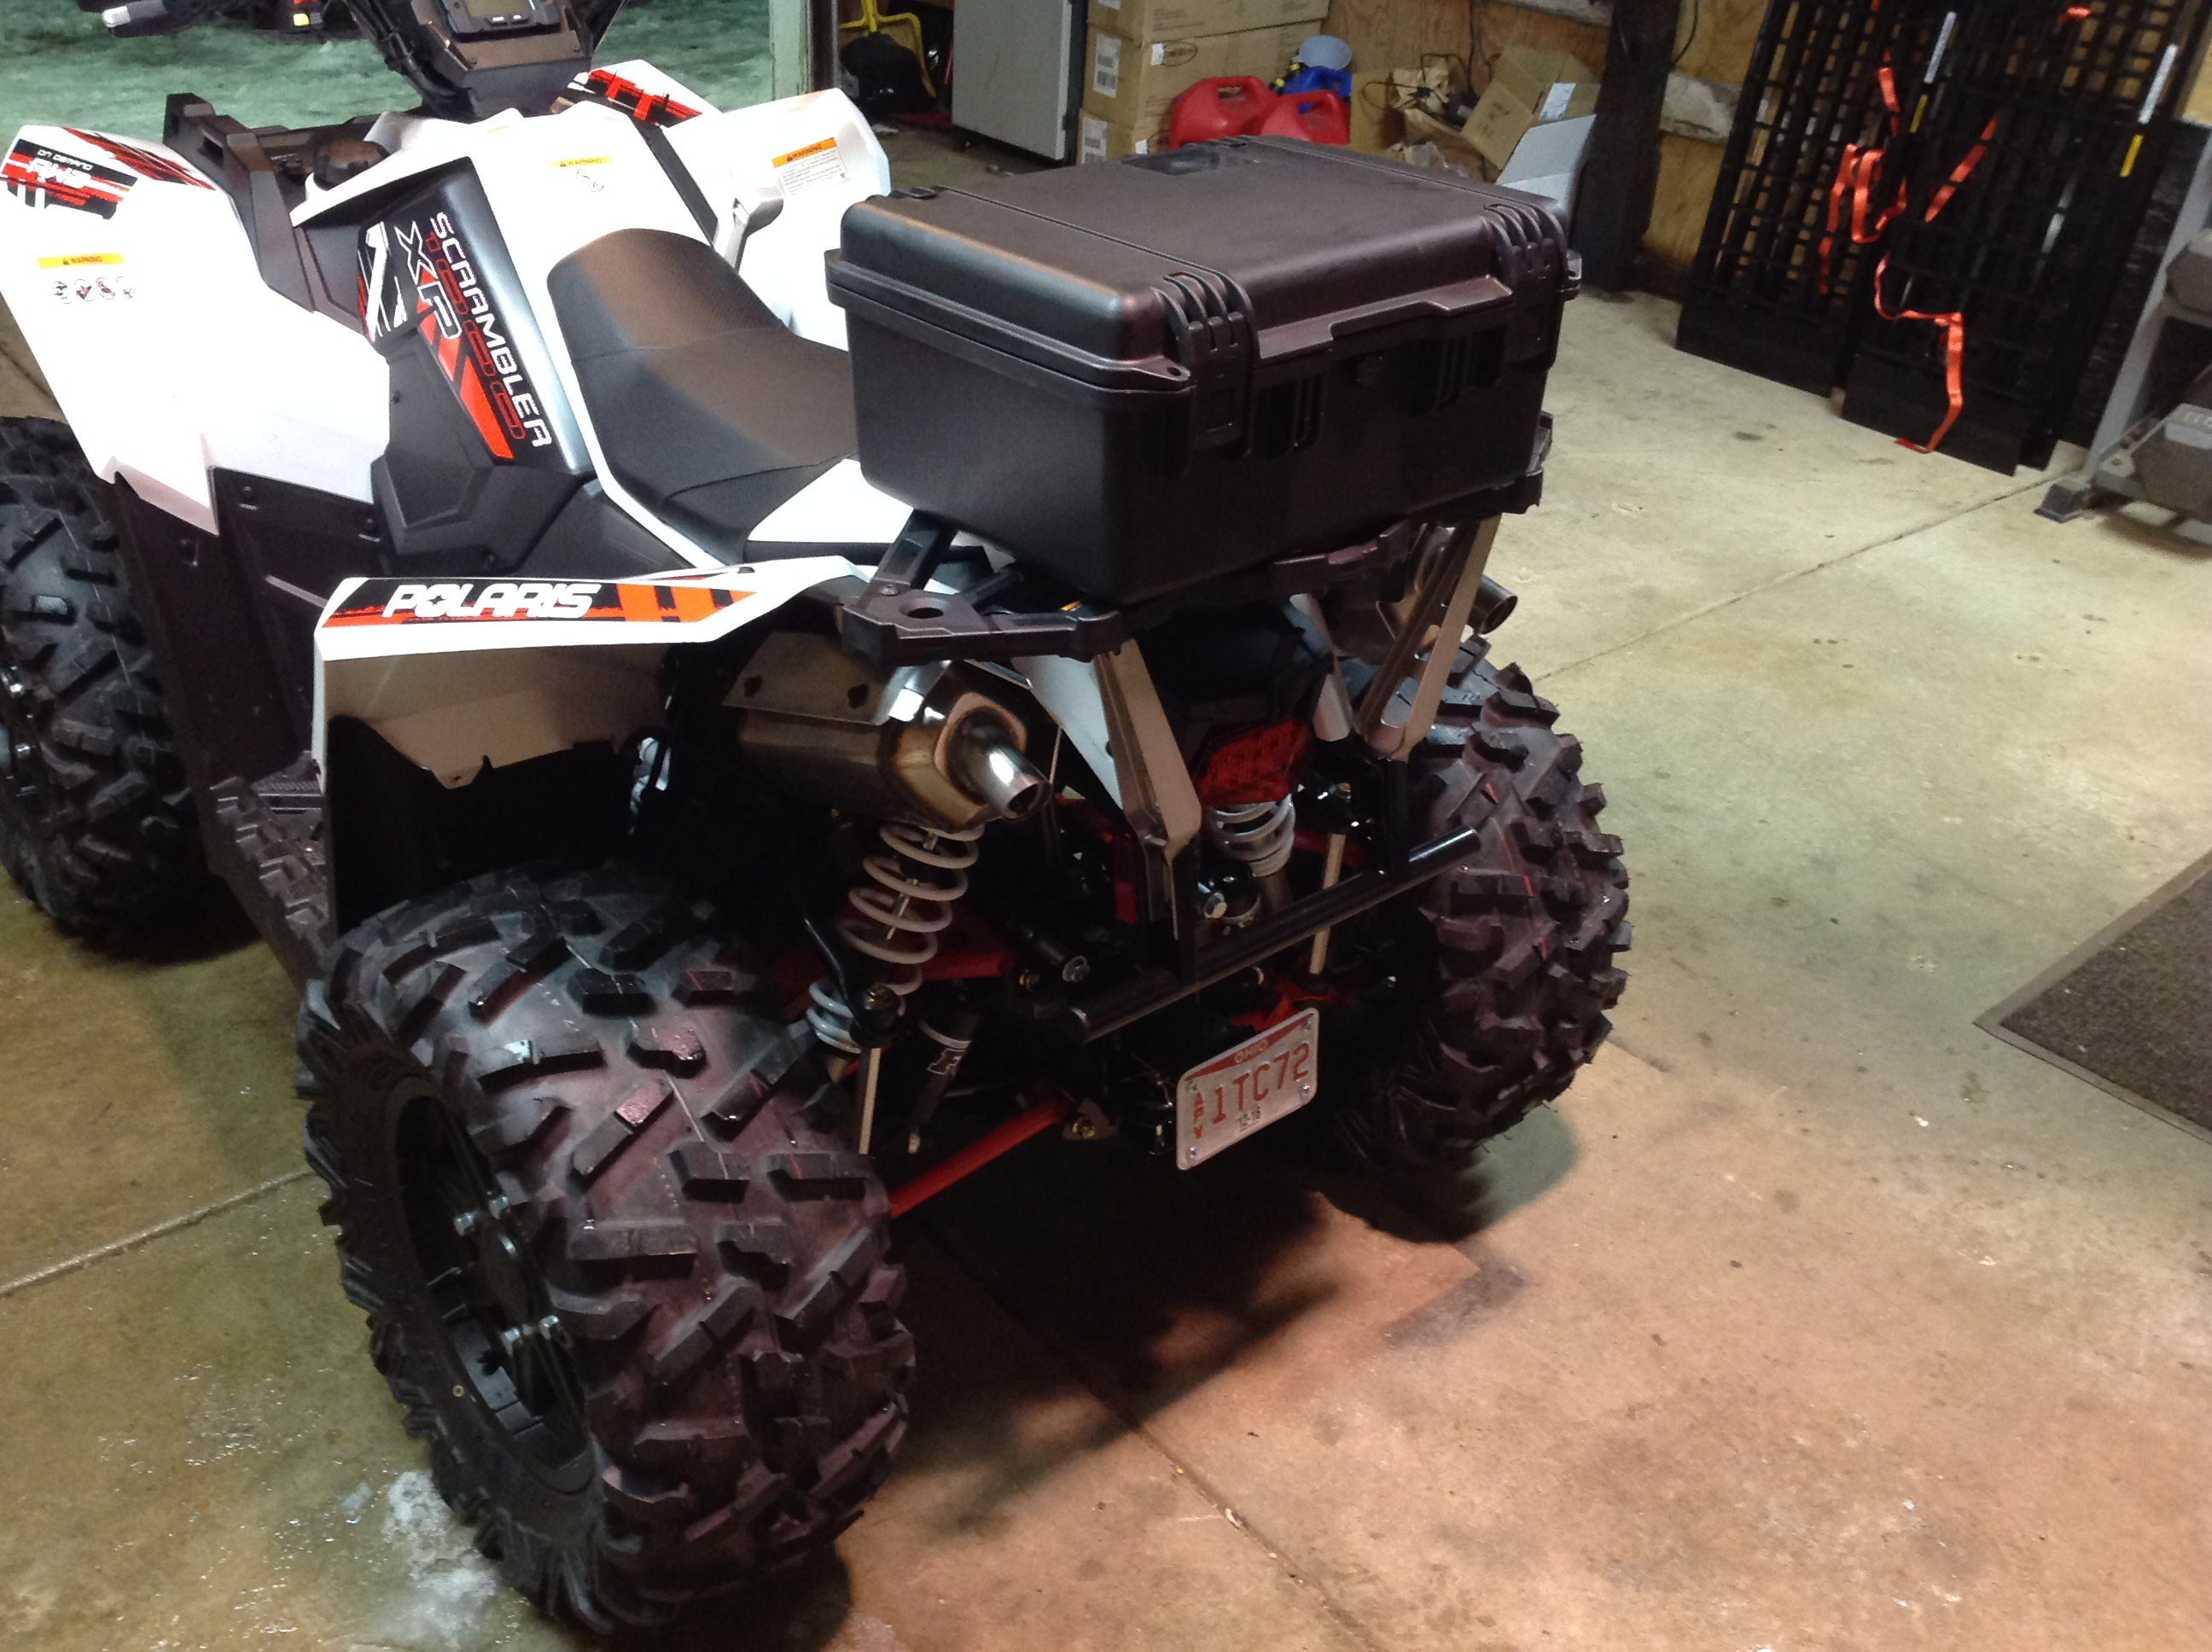 Picked up my 1000 today but... - Page 5 - Polaris ATV Forum